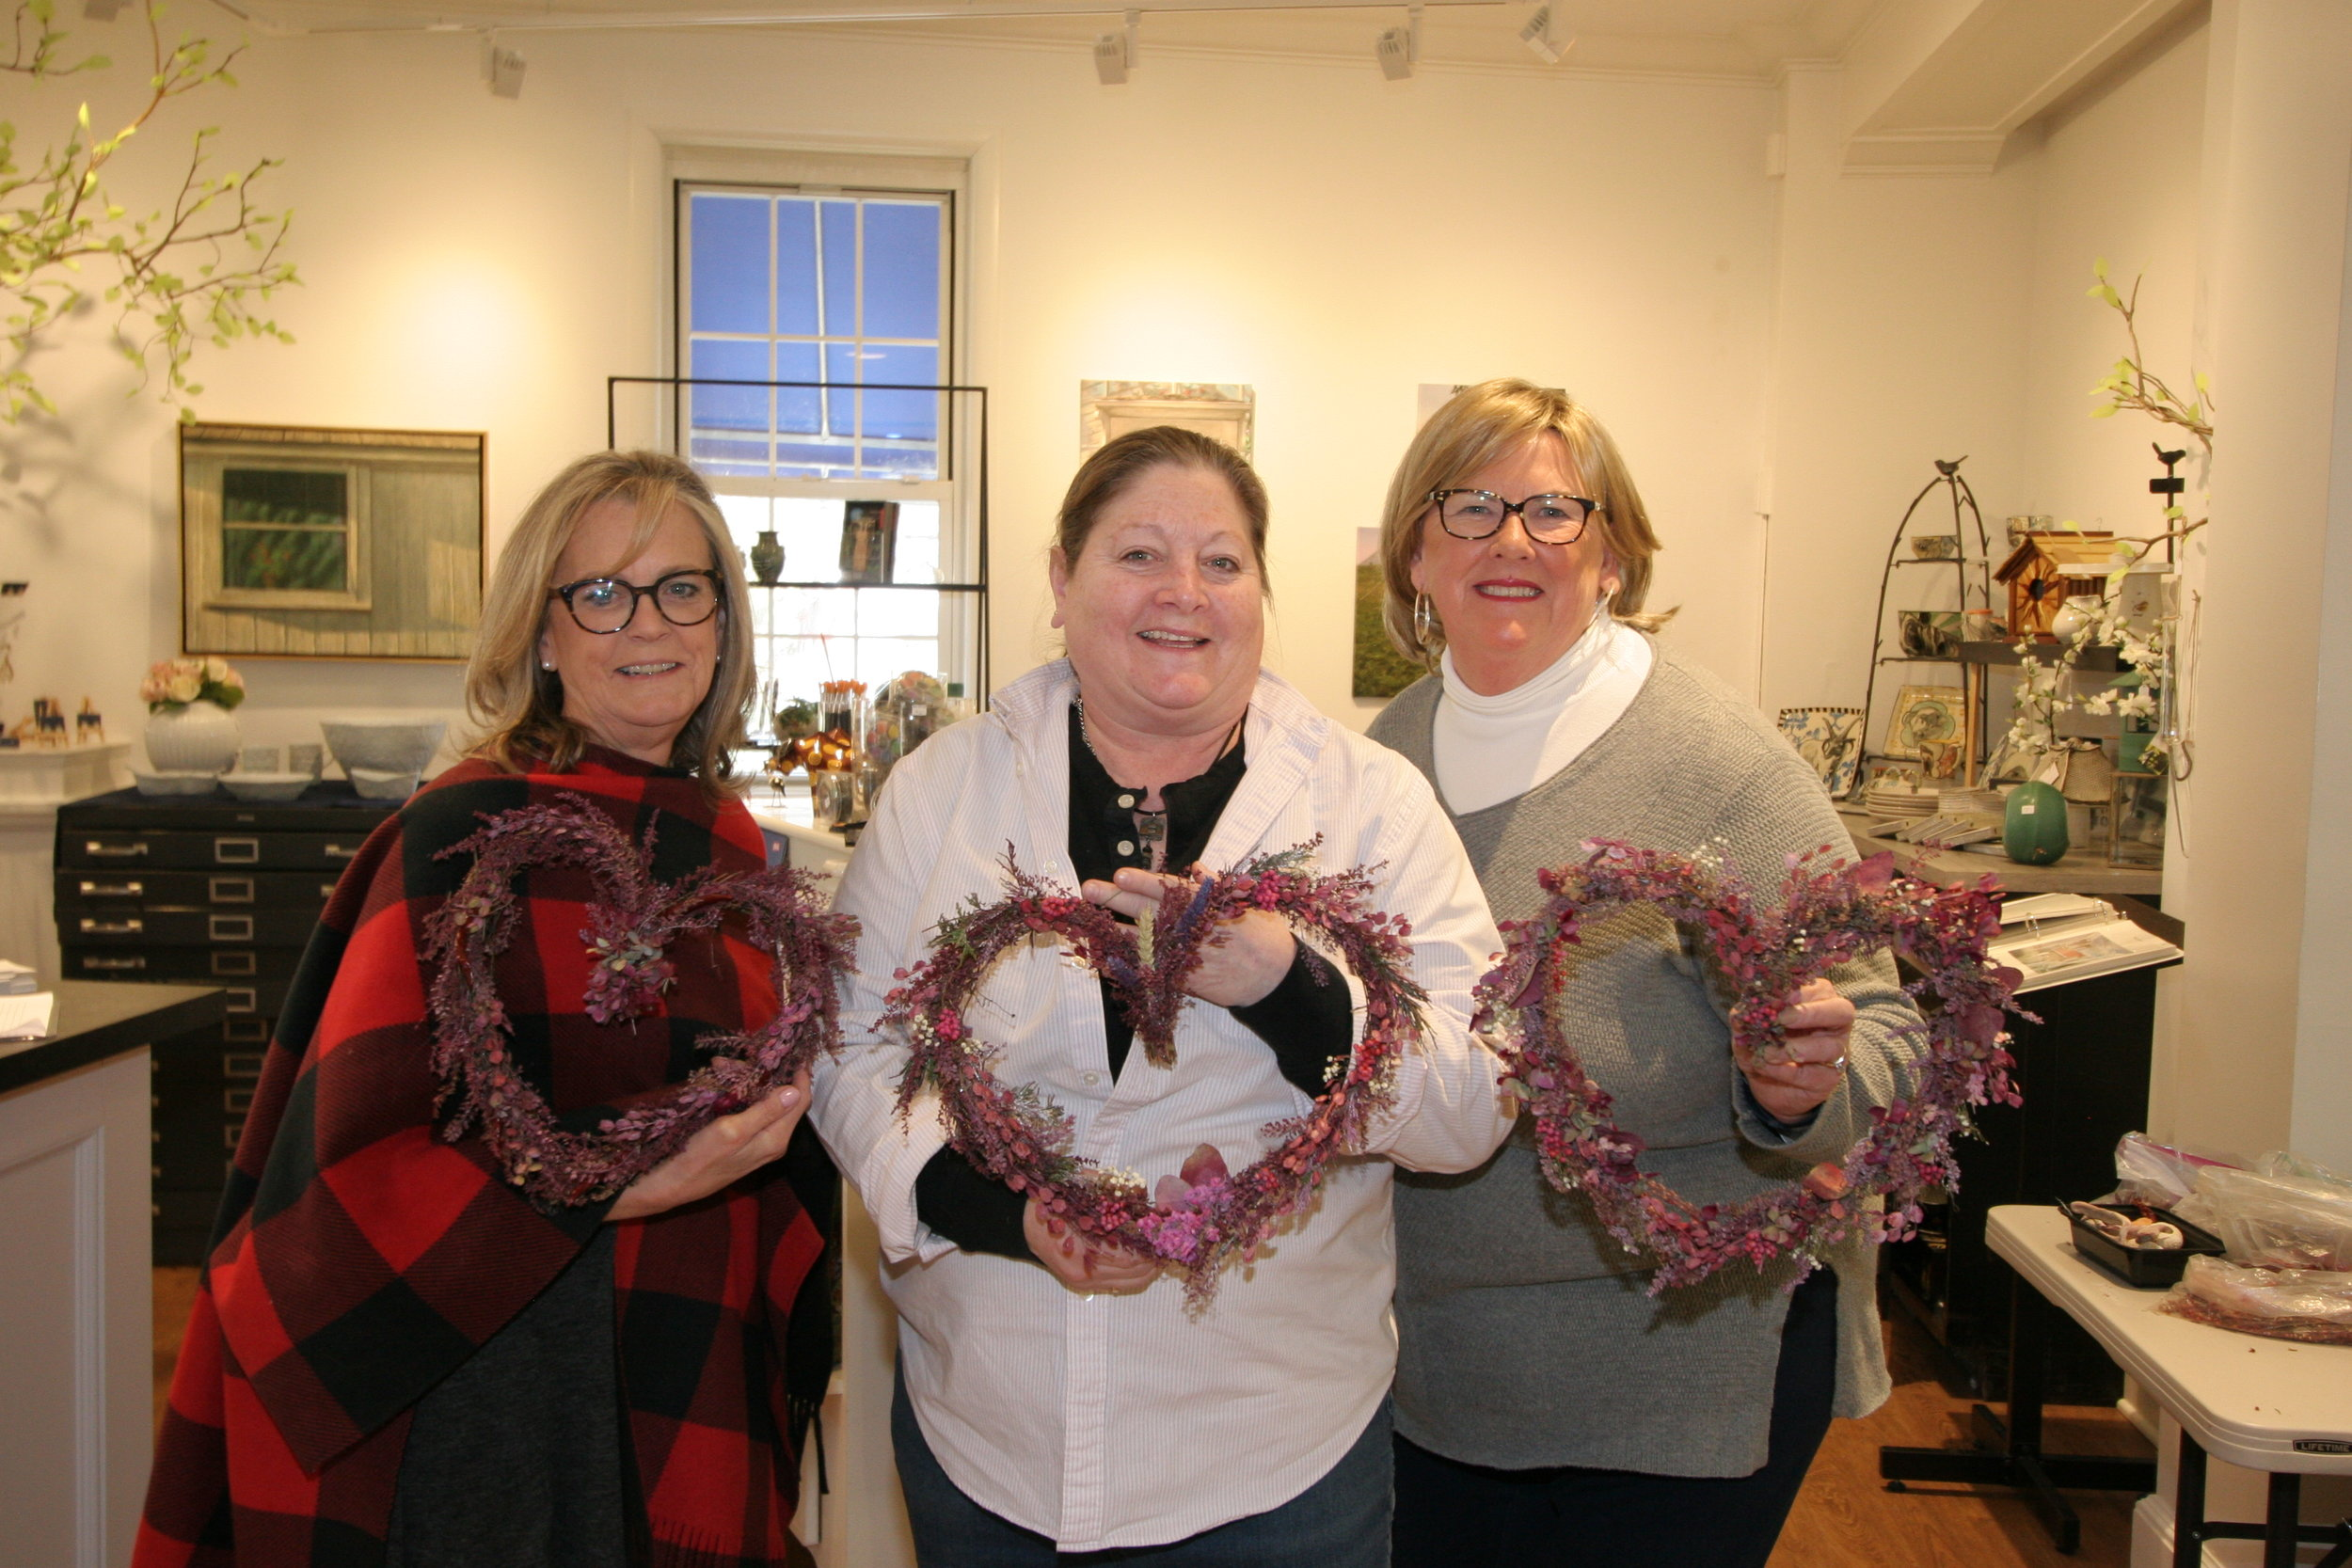 Wreath Wkshp Feb 066.jpg